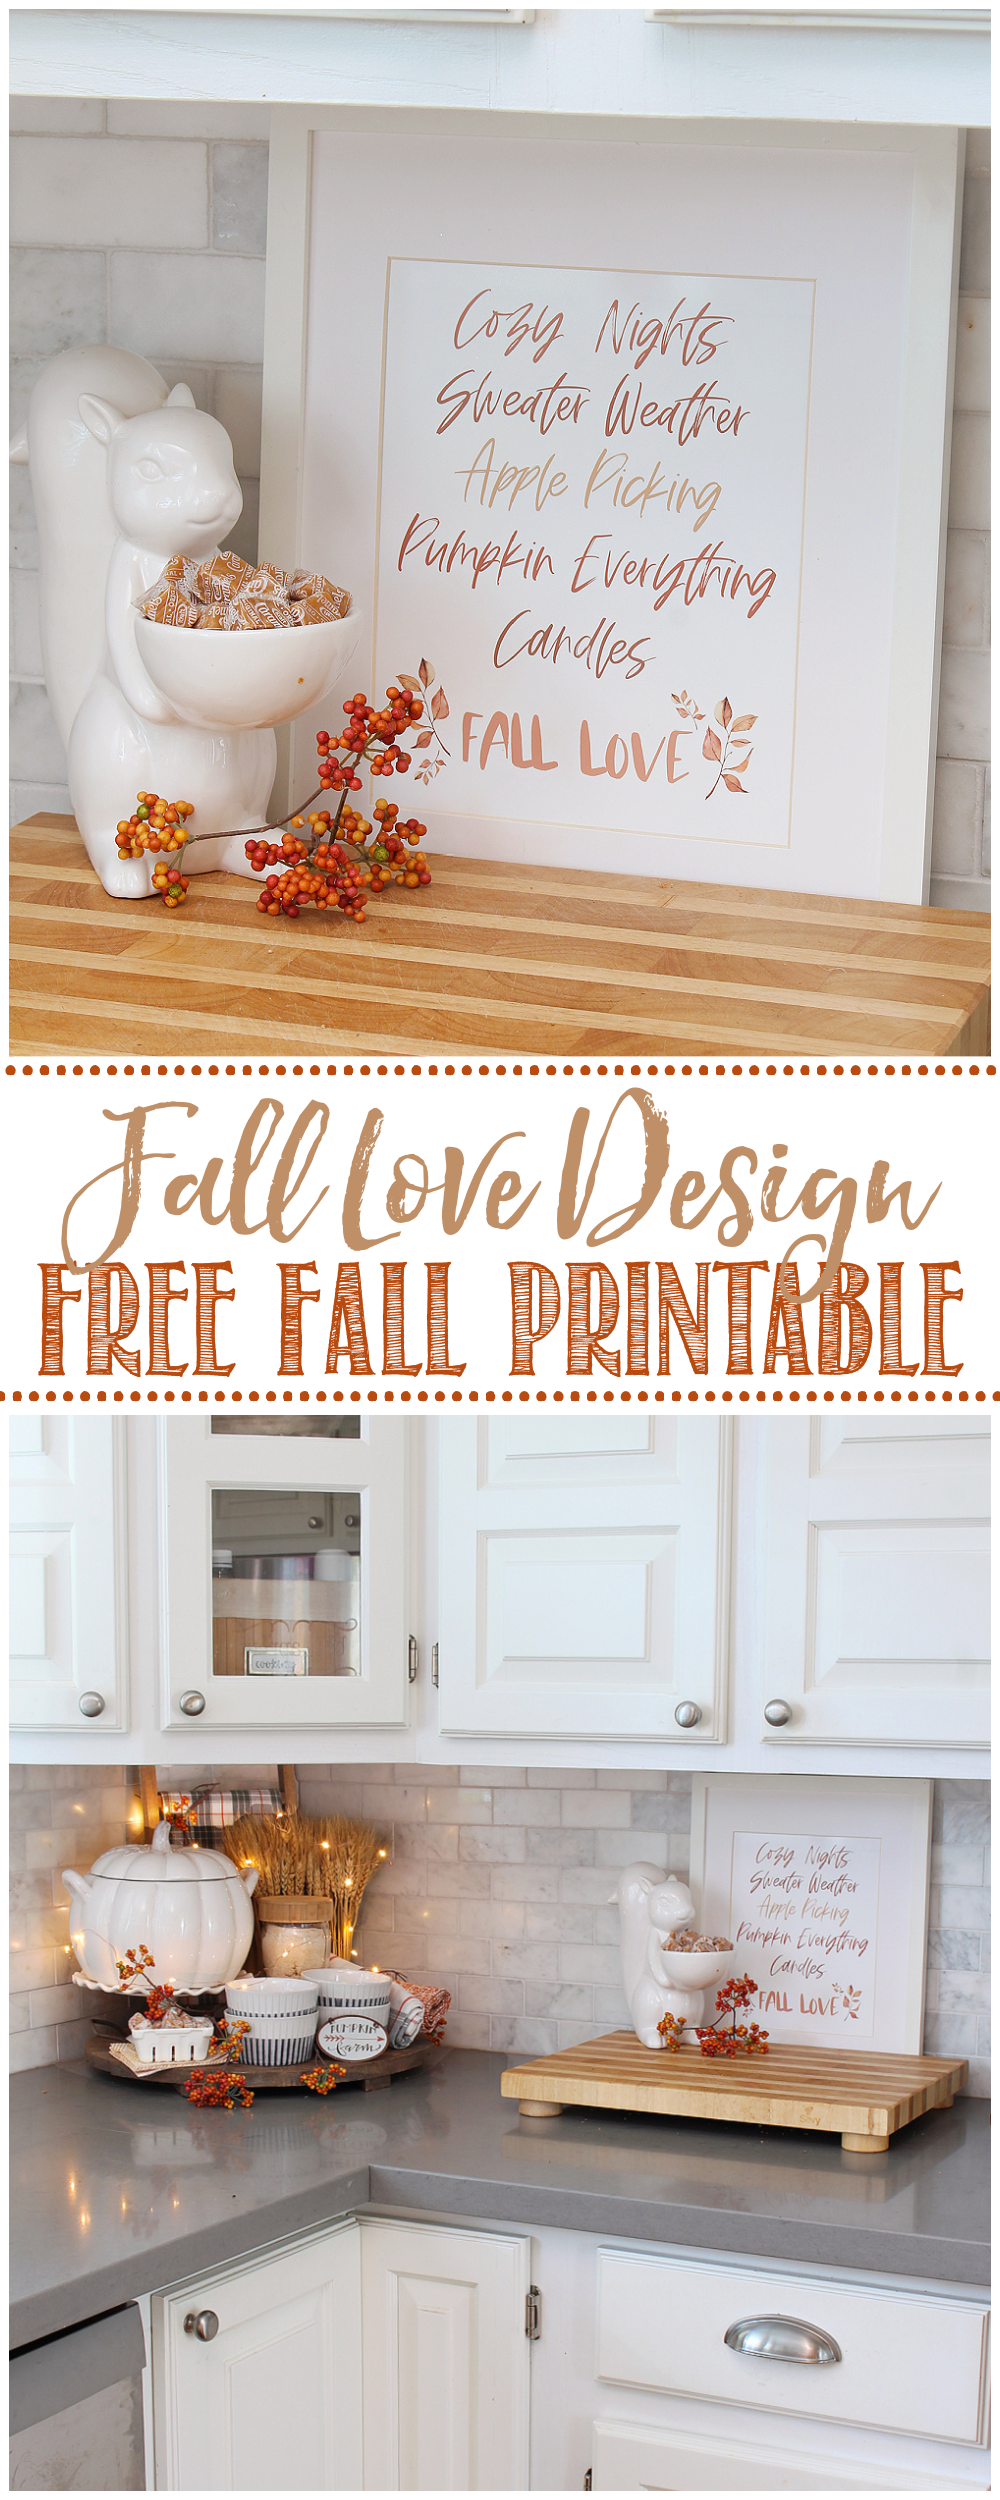 Fall Love design free fall printable in a white frame with fall decor.